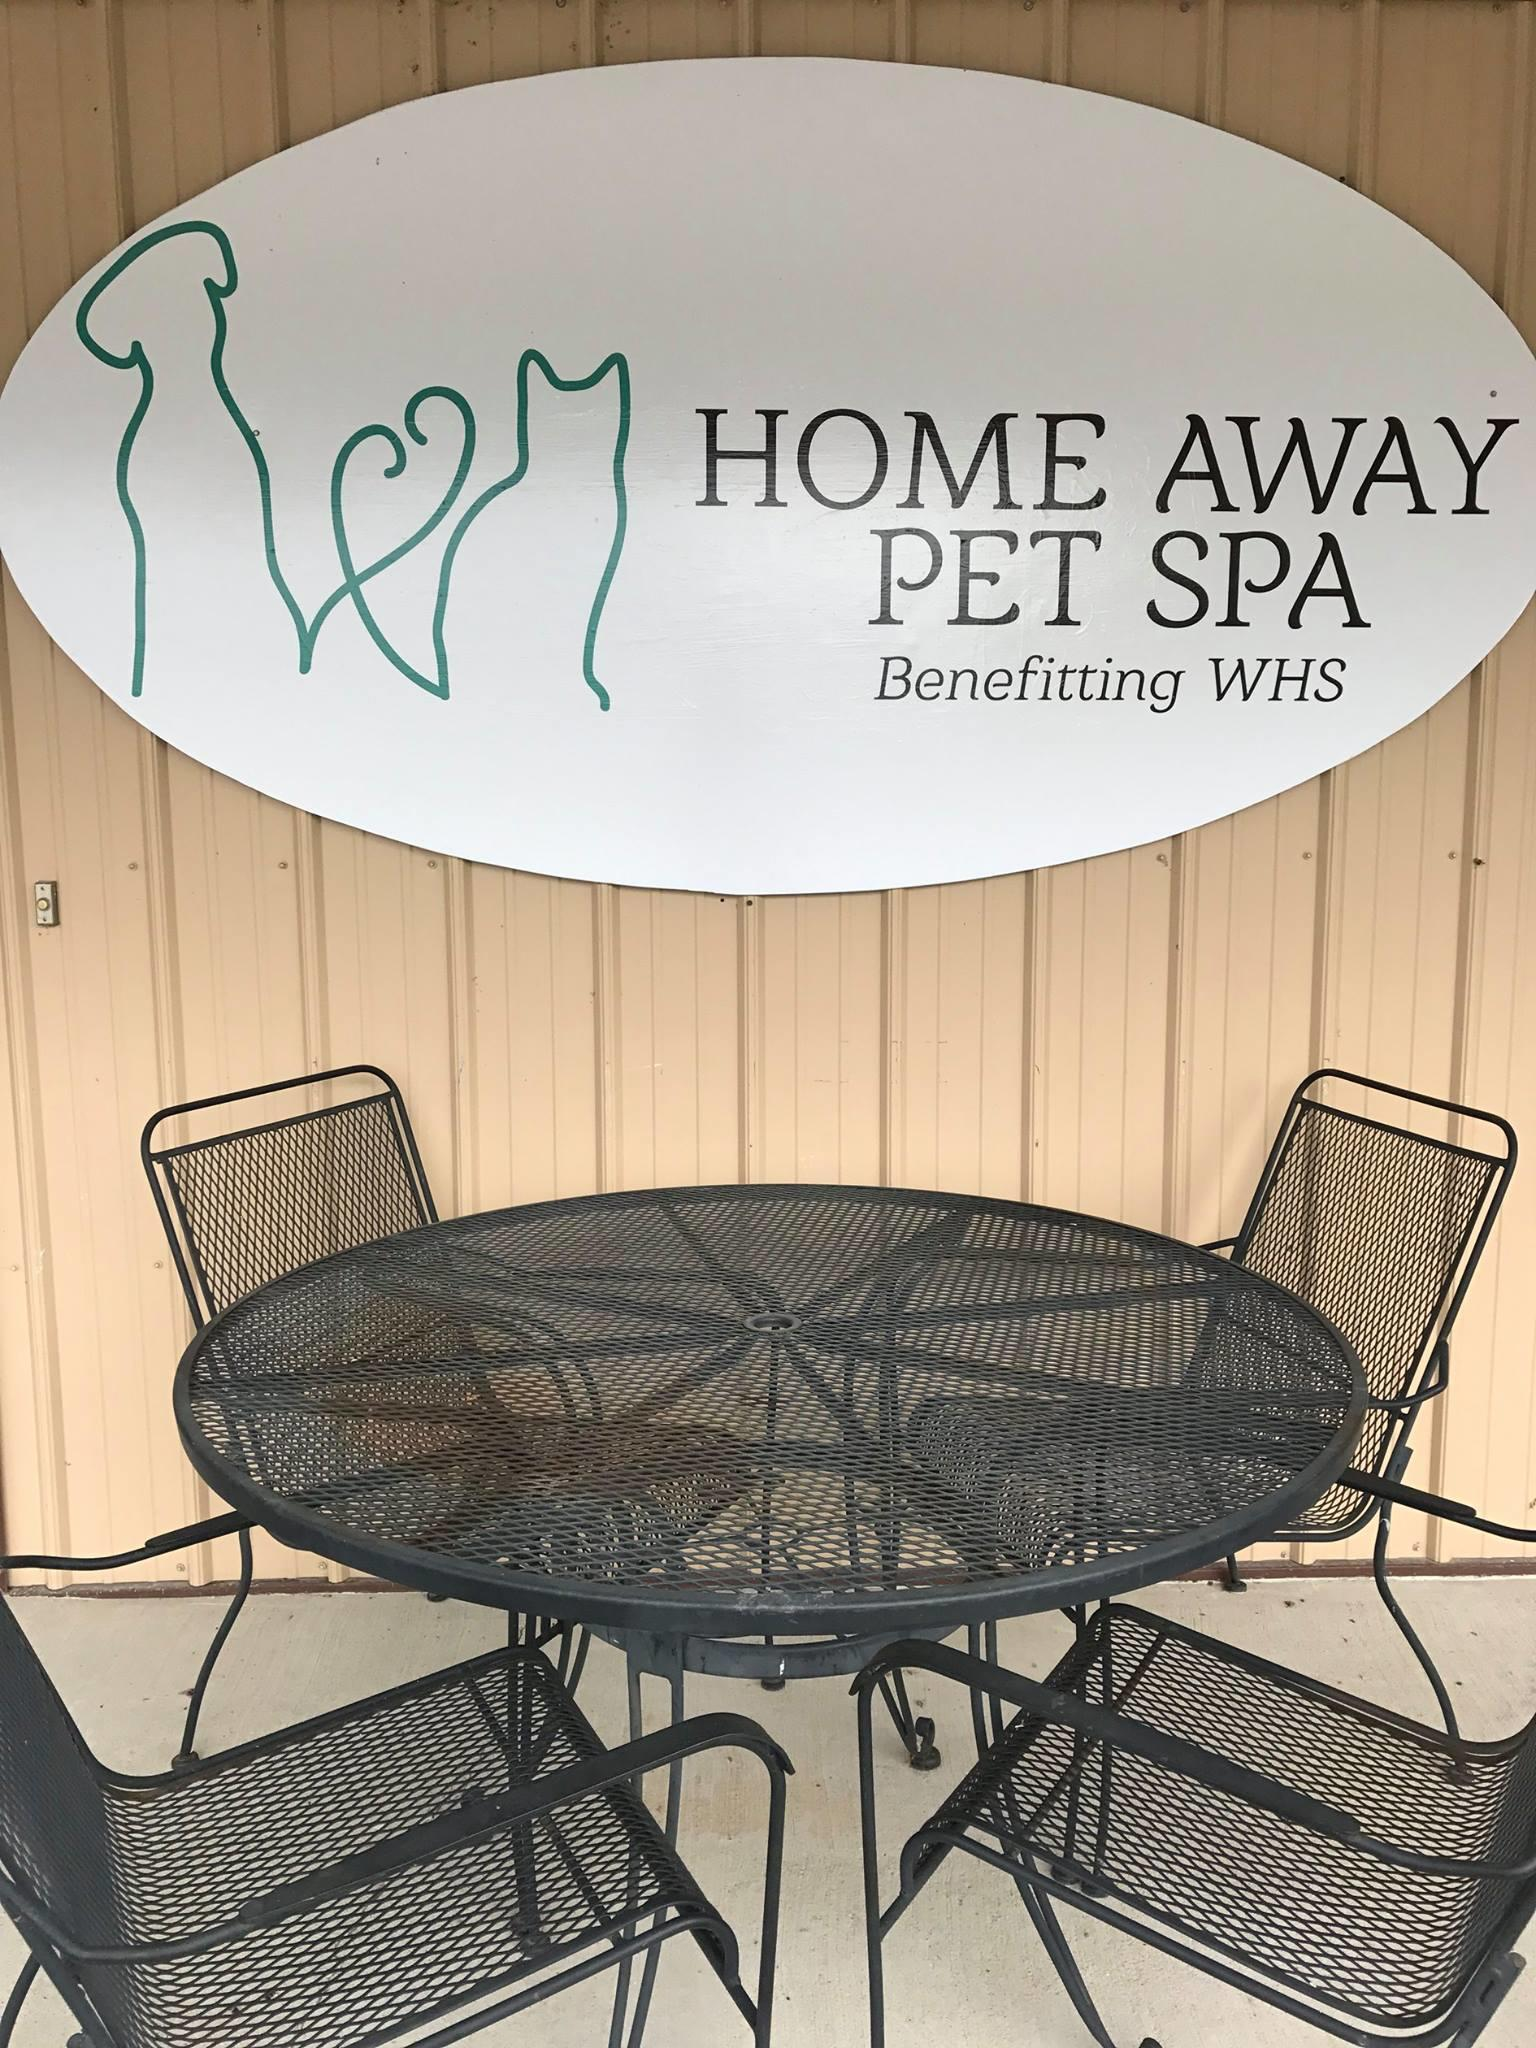 Home Away Pet Spa image 1